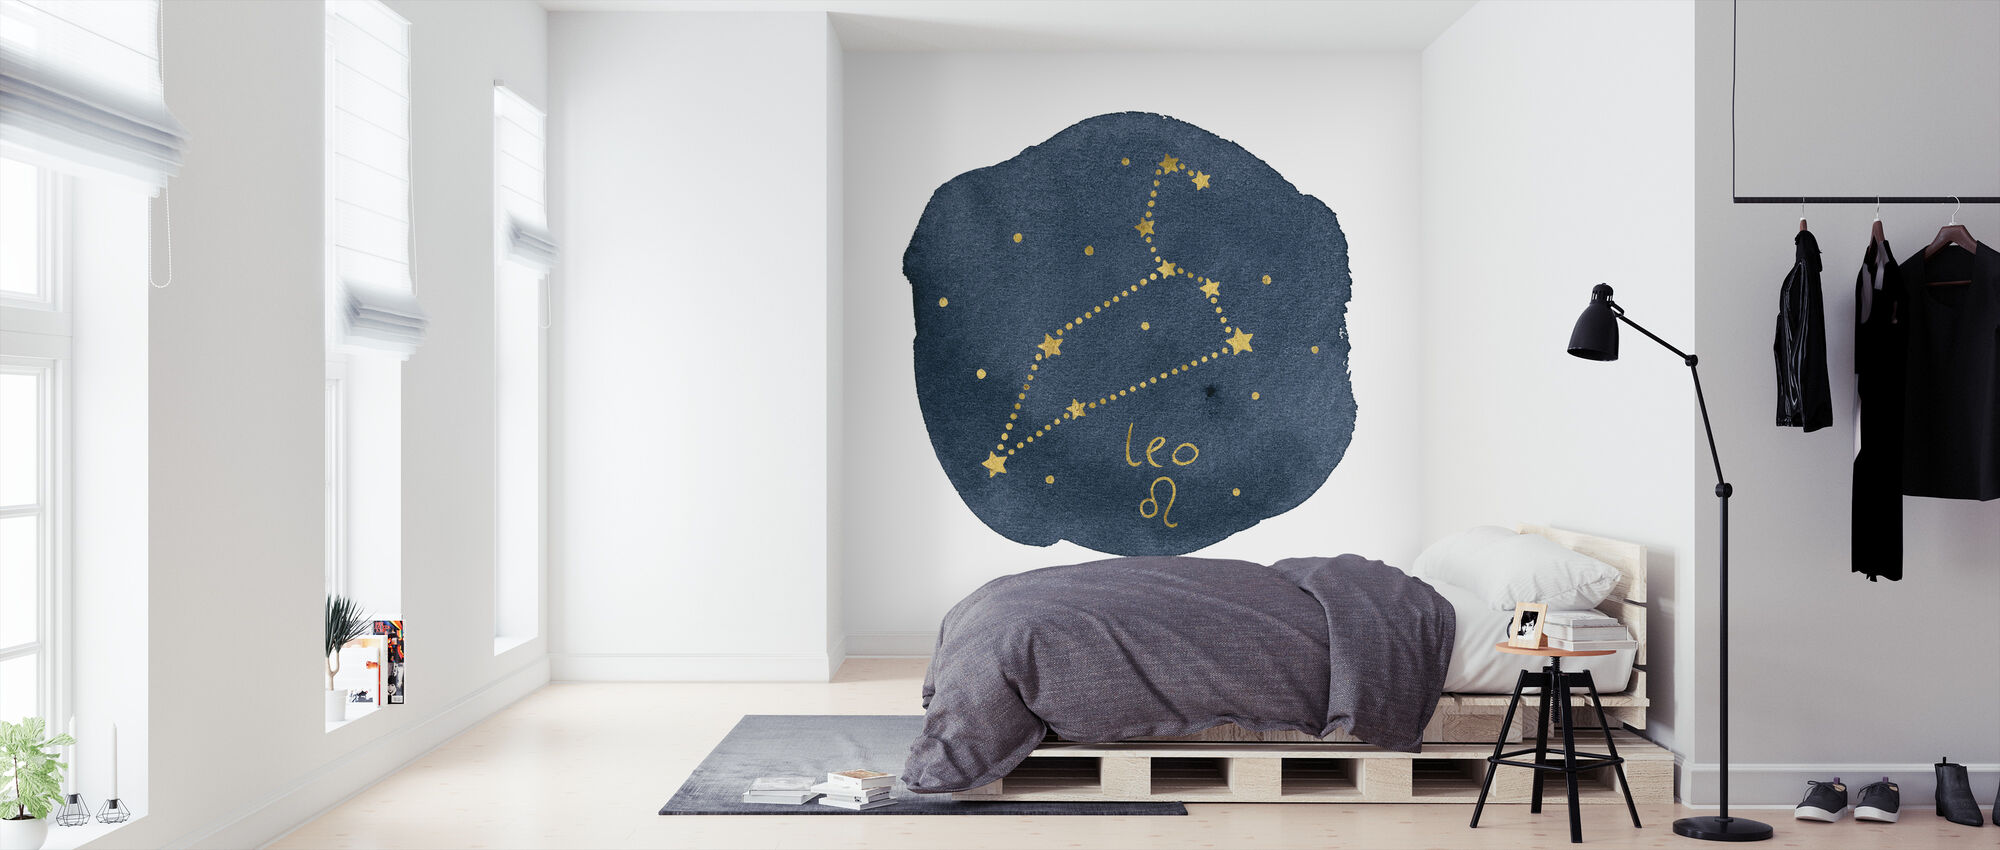 Horoscope Leo - Wallpaper - Bedroom